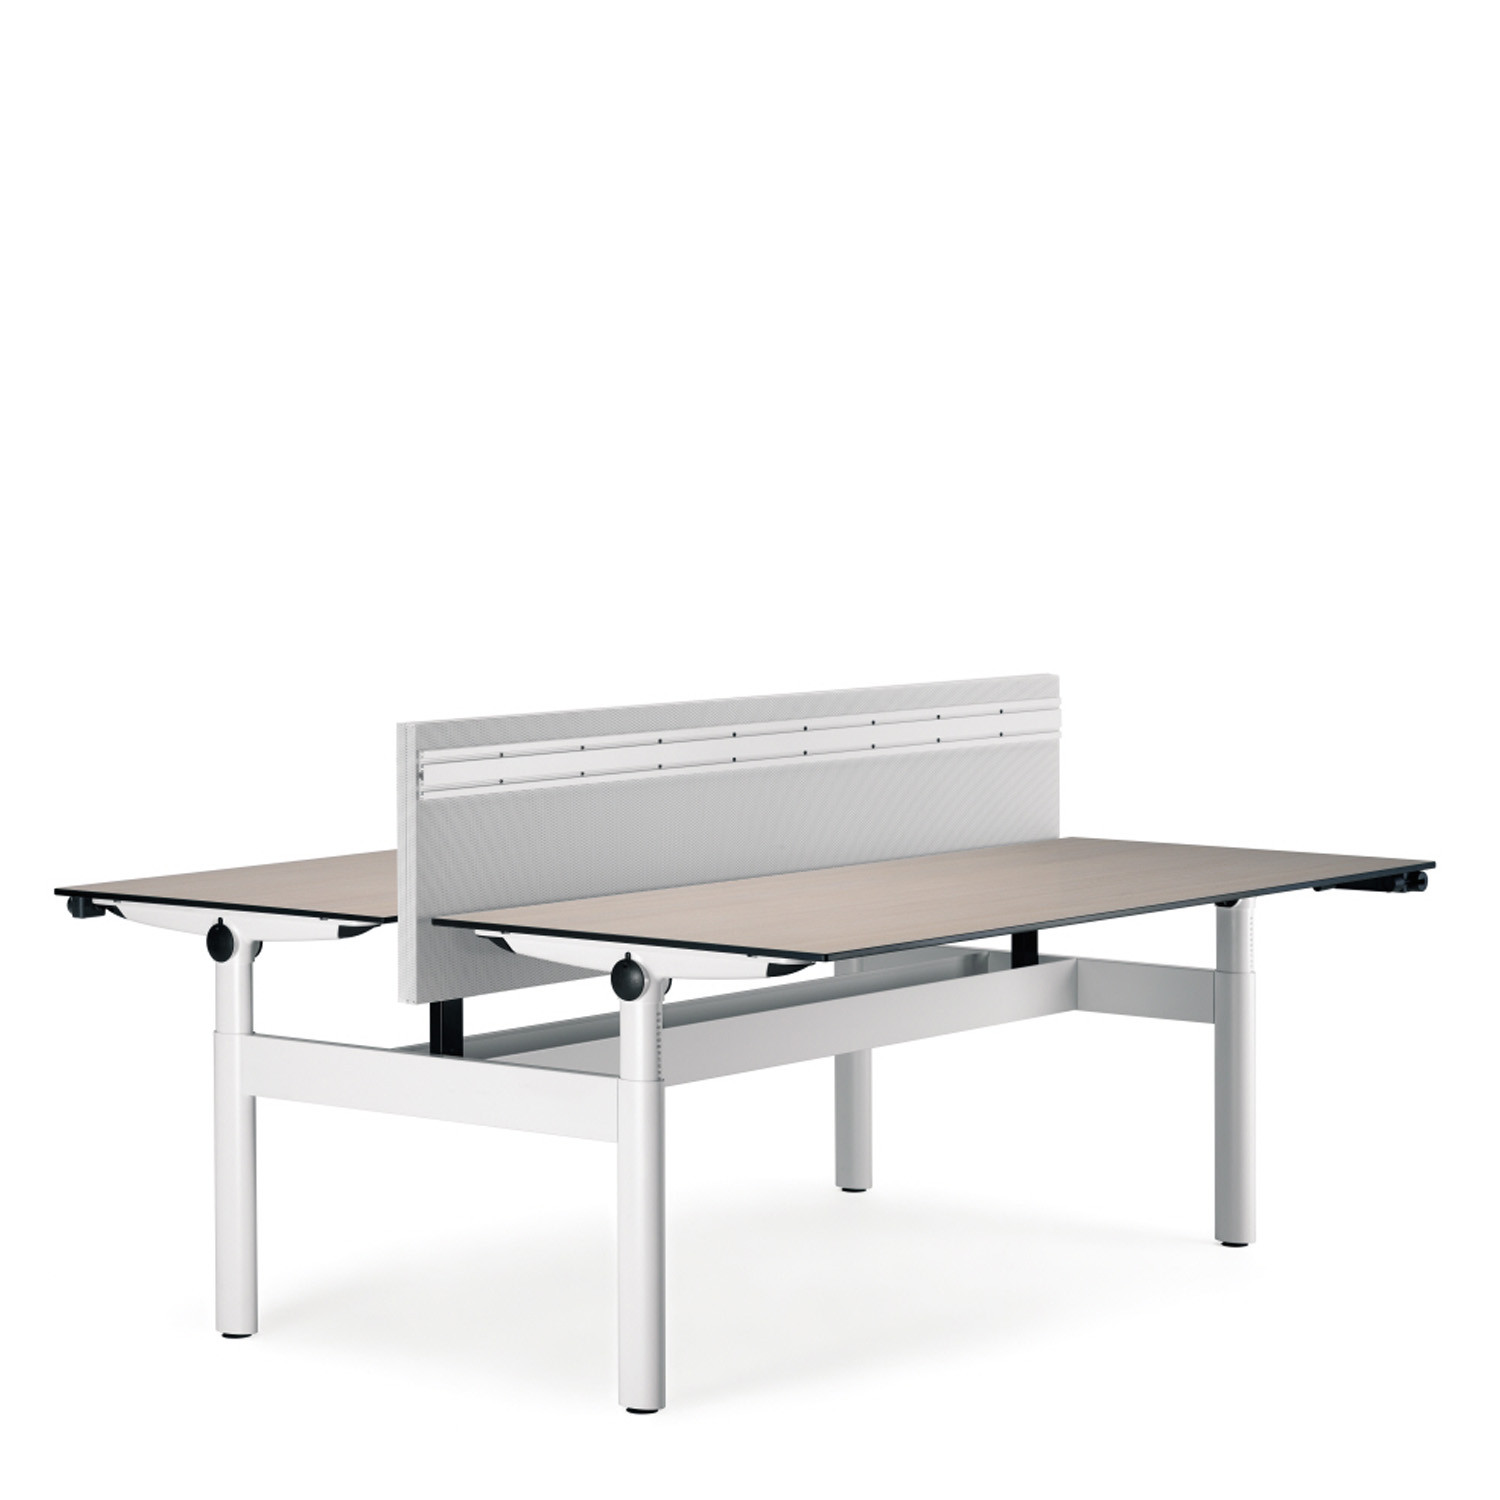 Ahrend 500 Duo Adjustable Bench Table